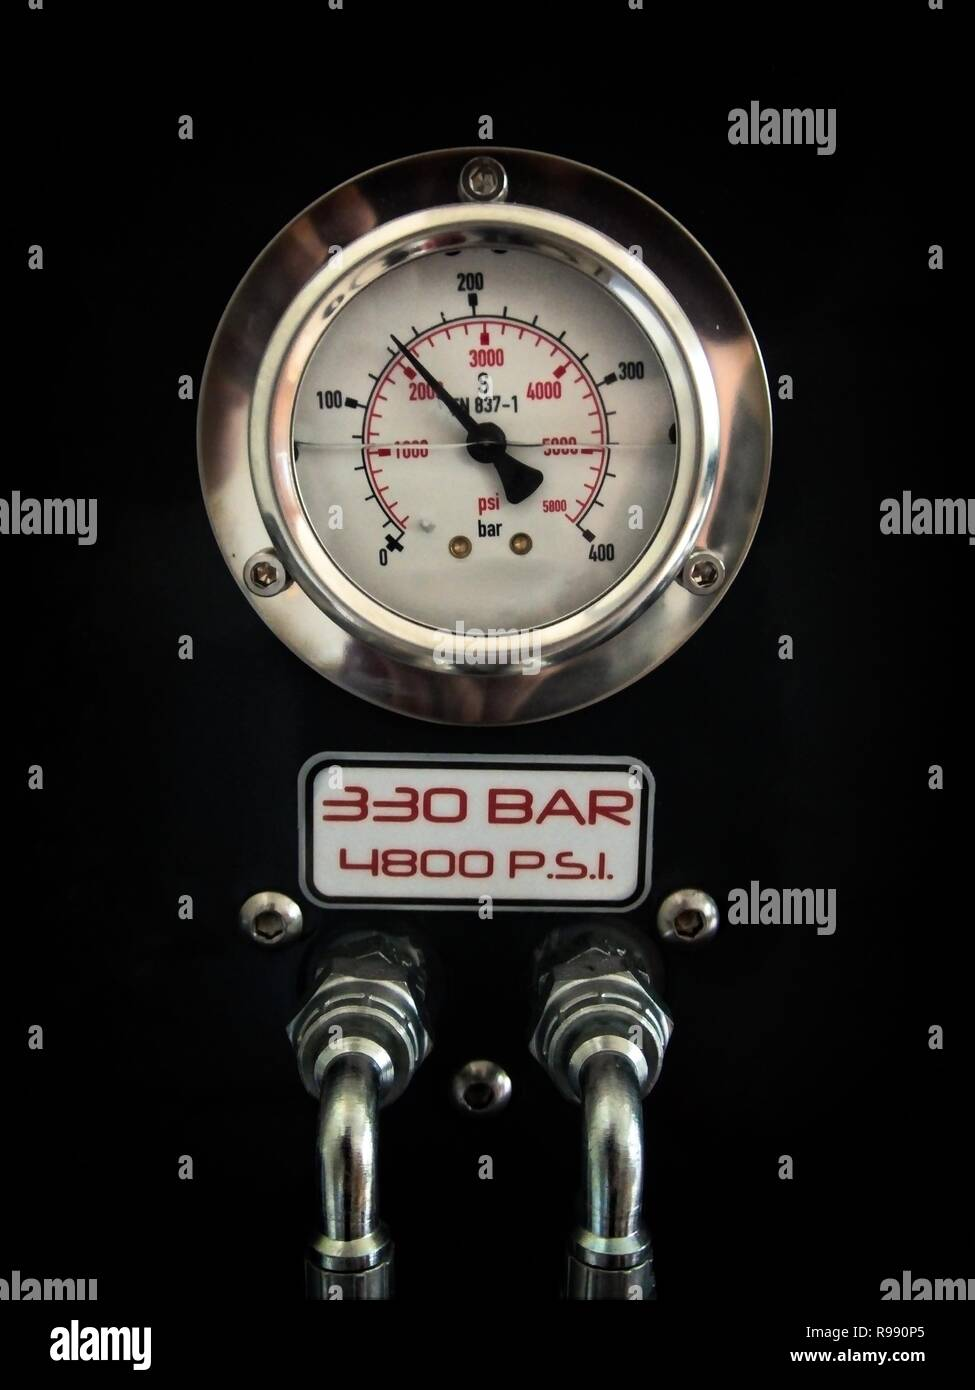 Analogous chromed gauge with pressure pipes in scuba tank compressor. - Stock Image